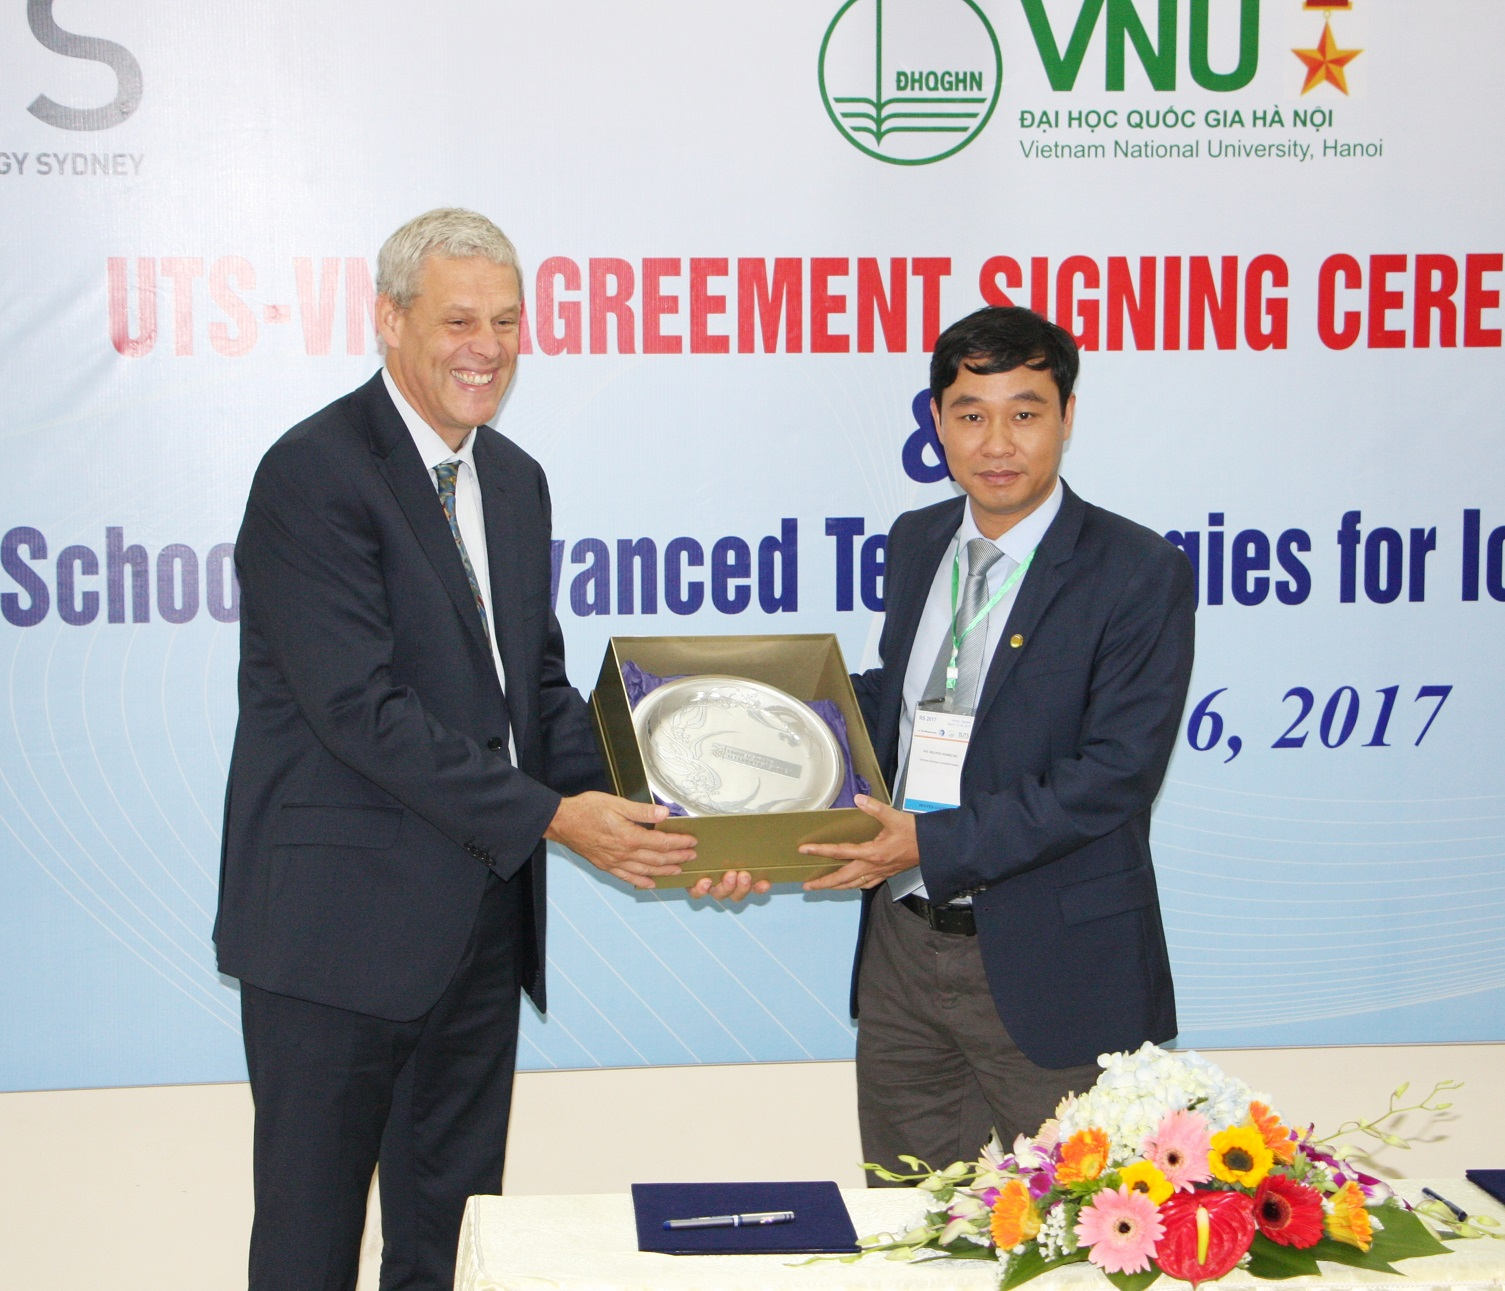 Official signing ceremony at VNU